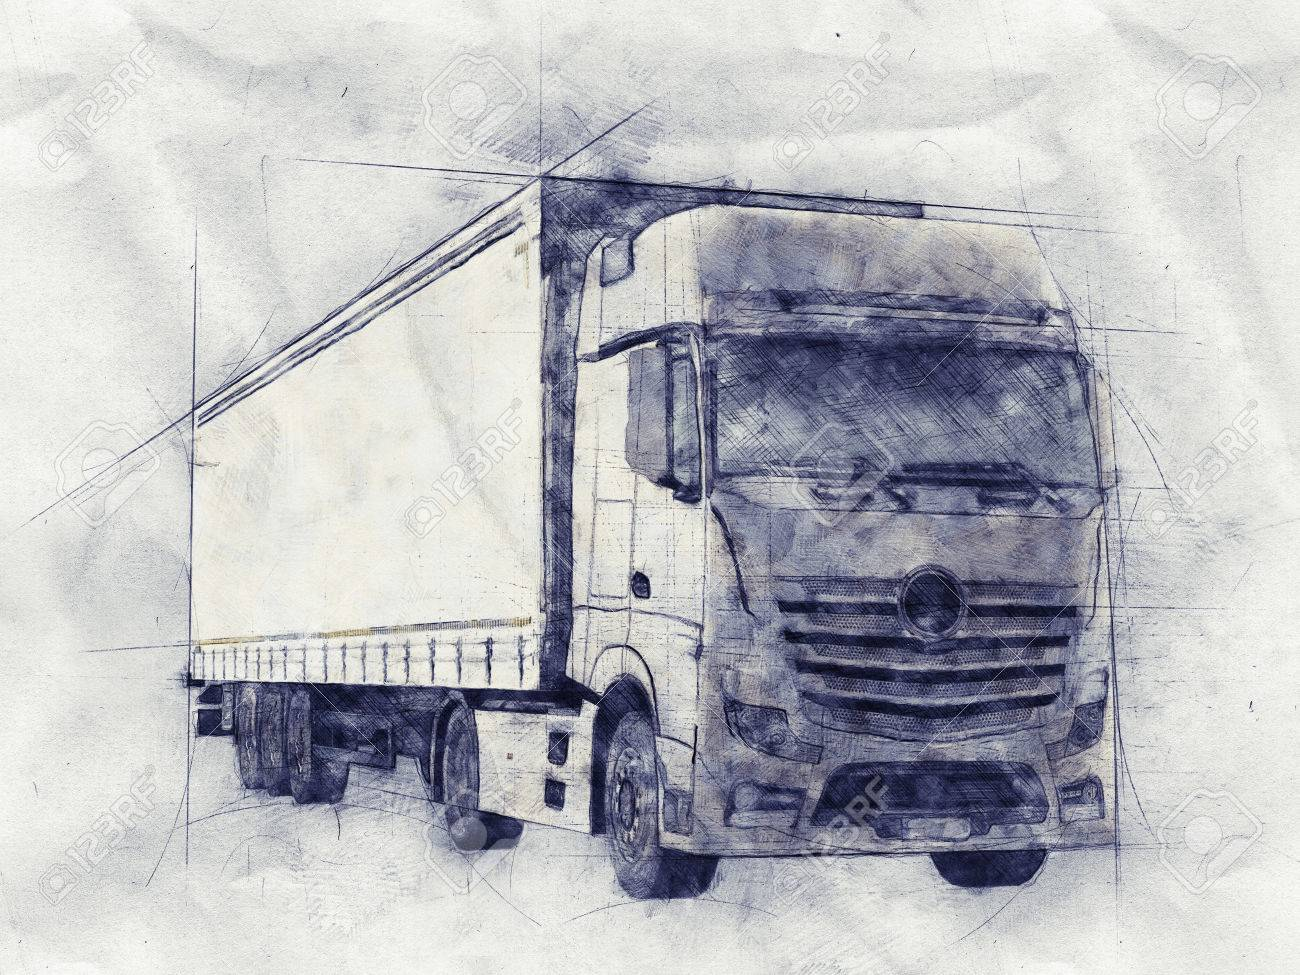 Pencil Sketch Of A Long Distance Transport Or Haulage Truck On